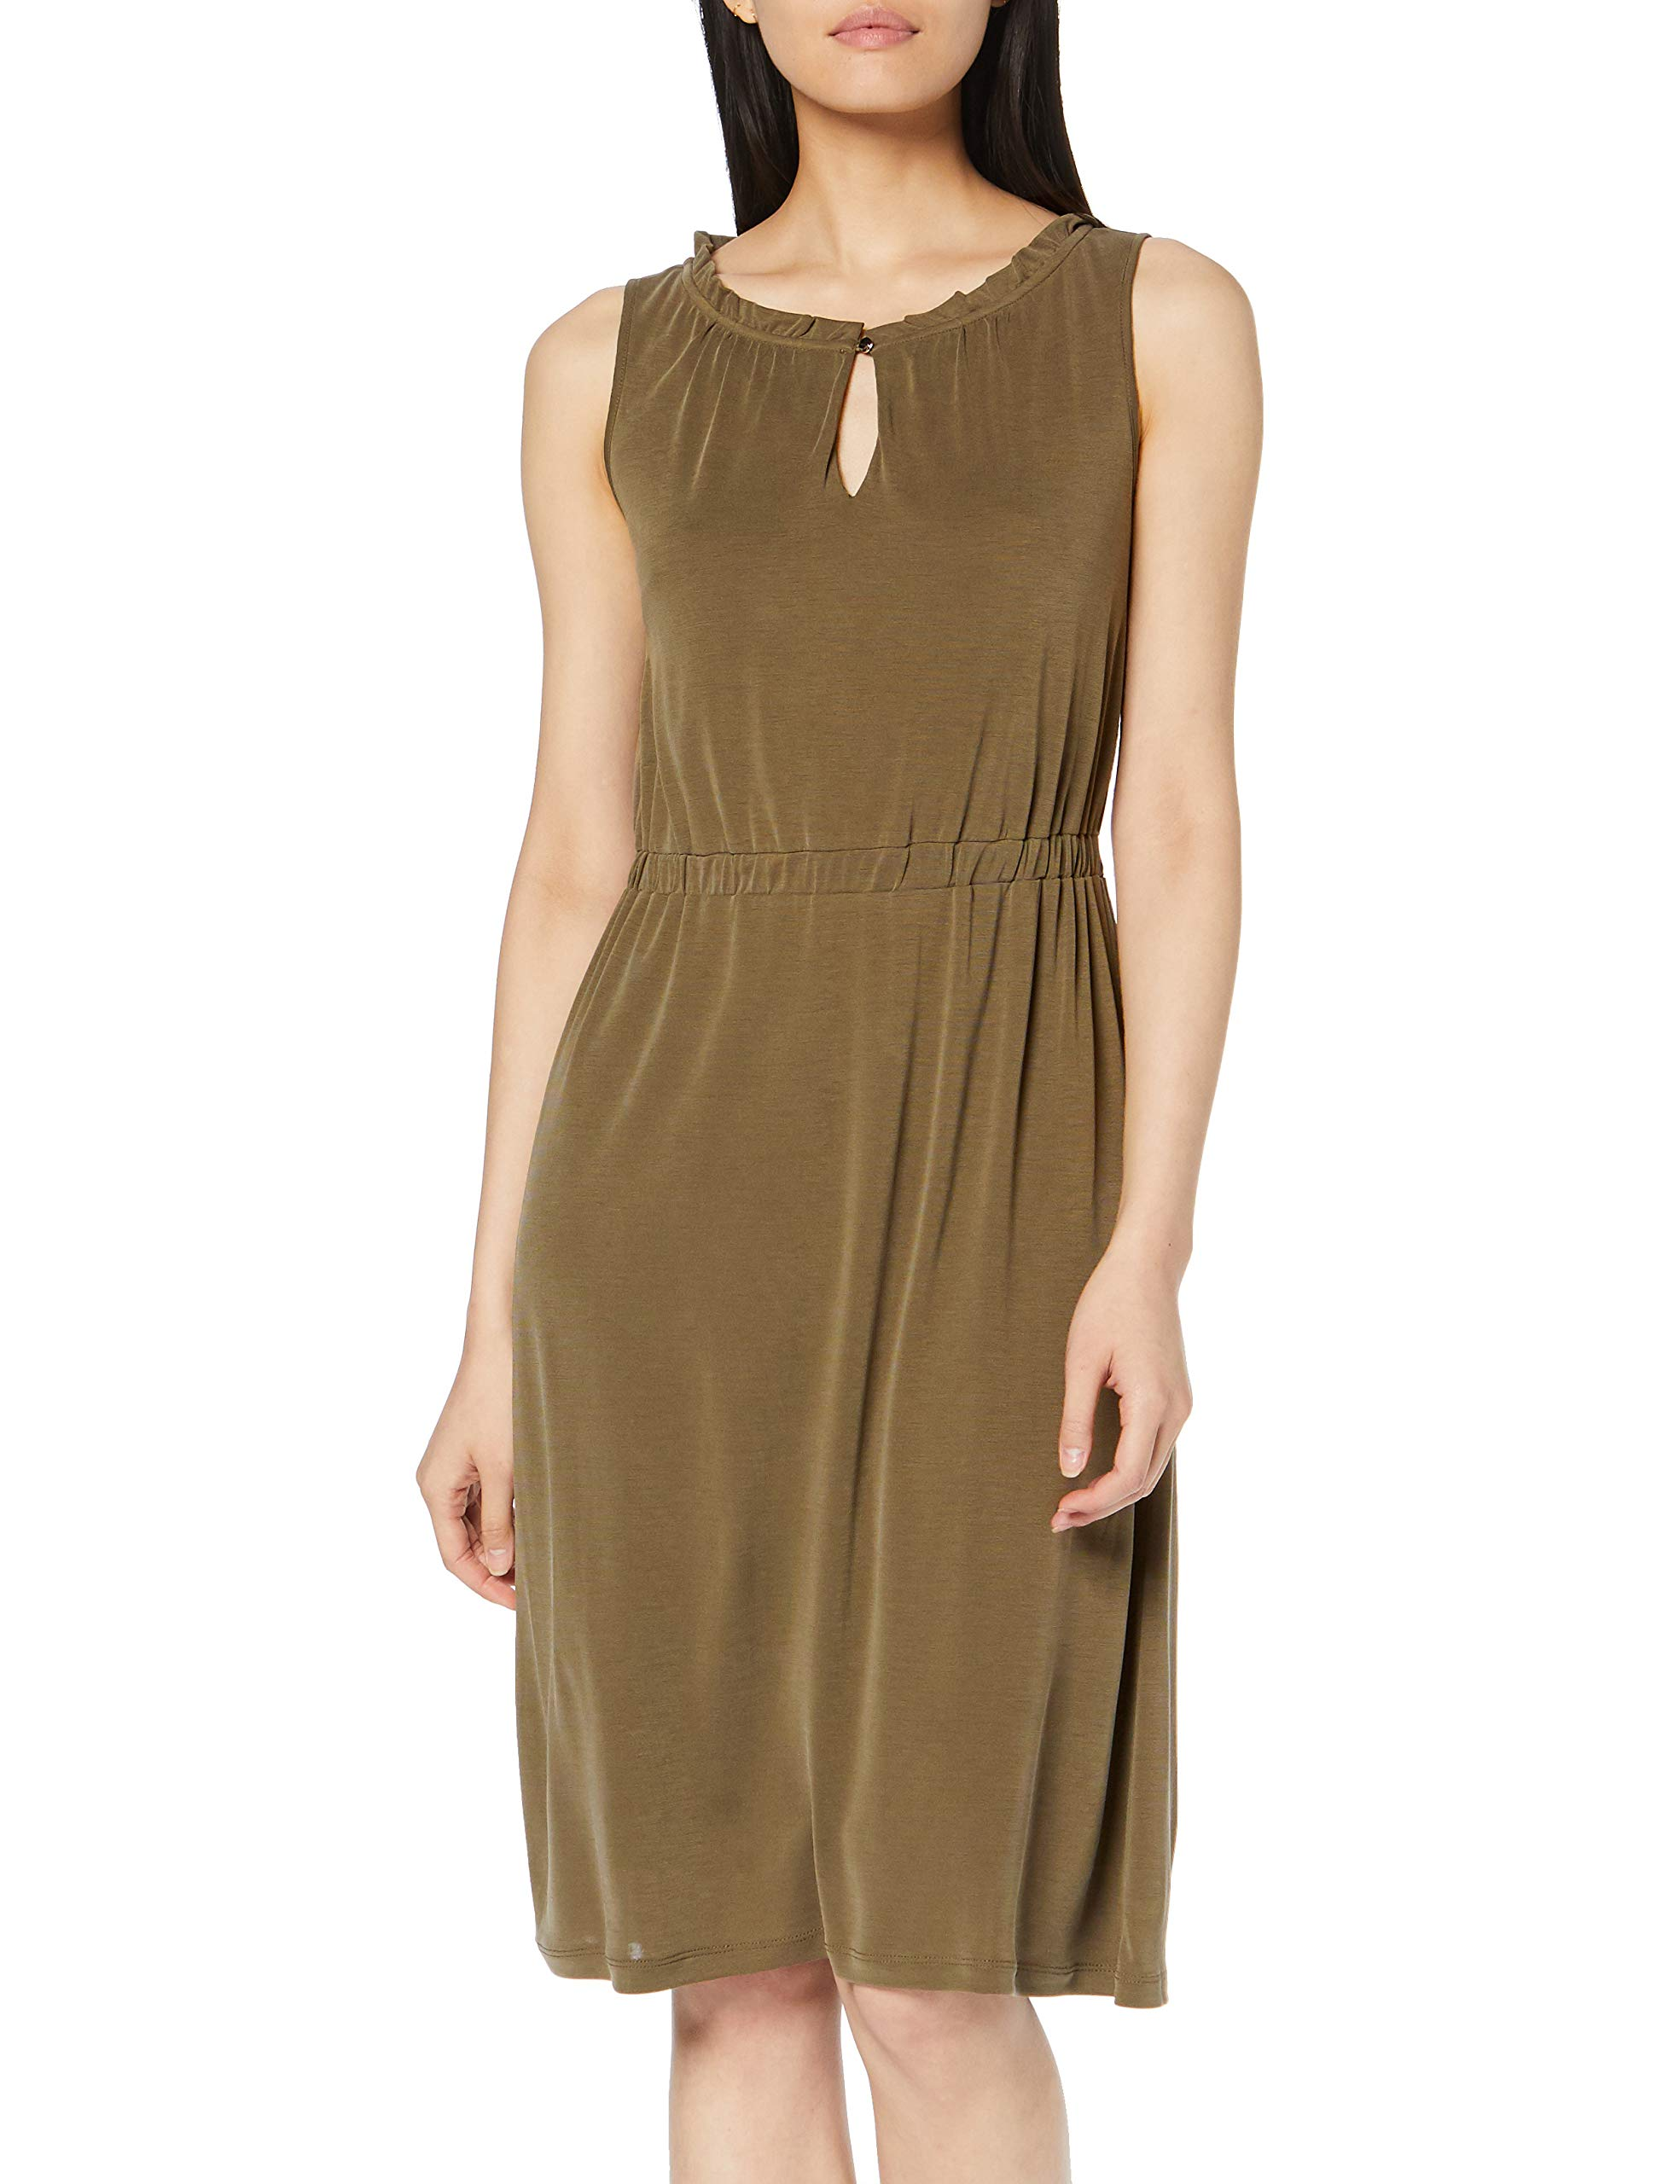 797038taille 907 81 82 Comma RobeVertkhaki Fabricant36Femme 5055 l1KcFJT